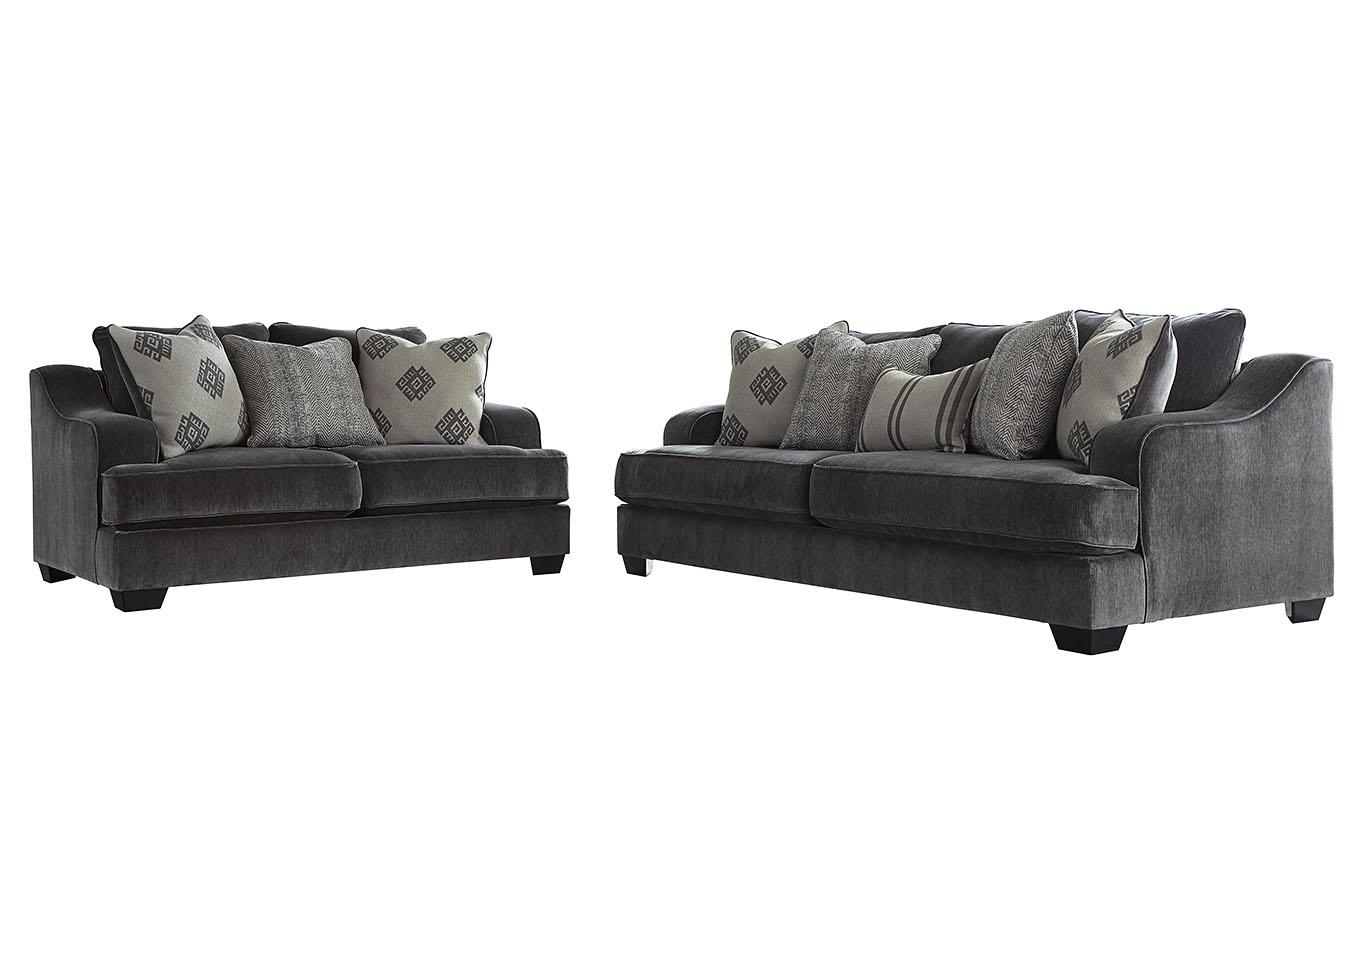 Corvara Sofa & Loveseat